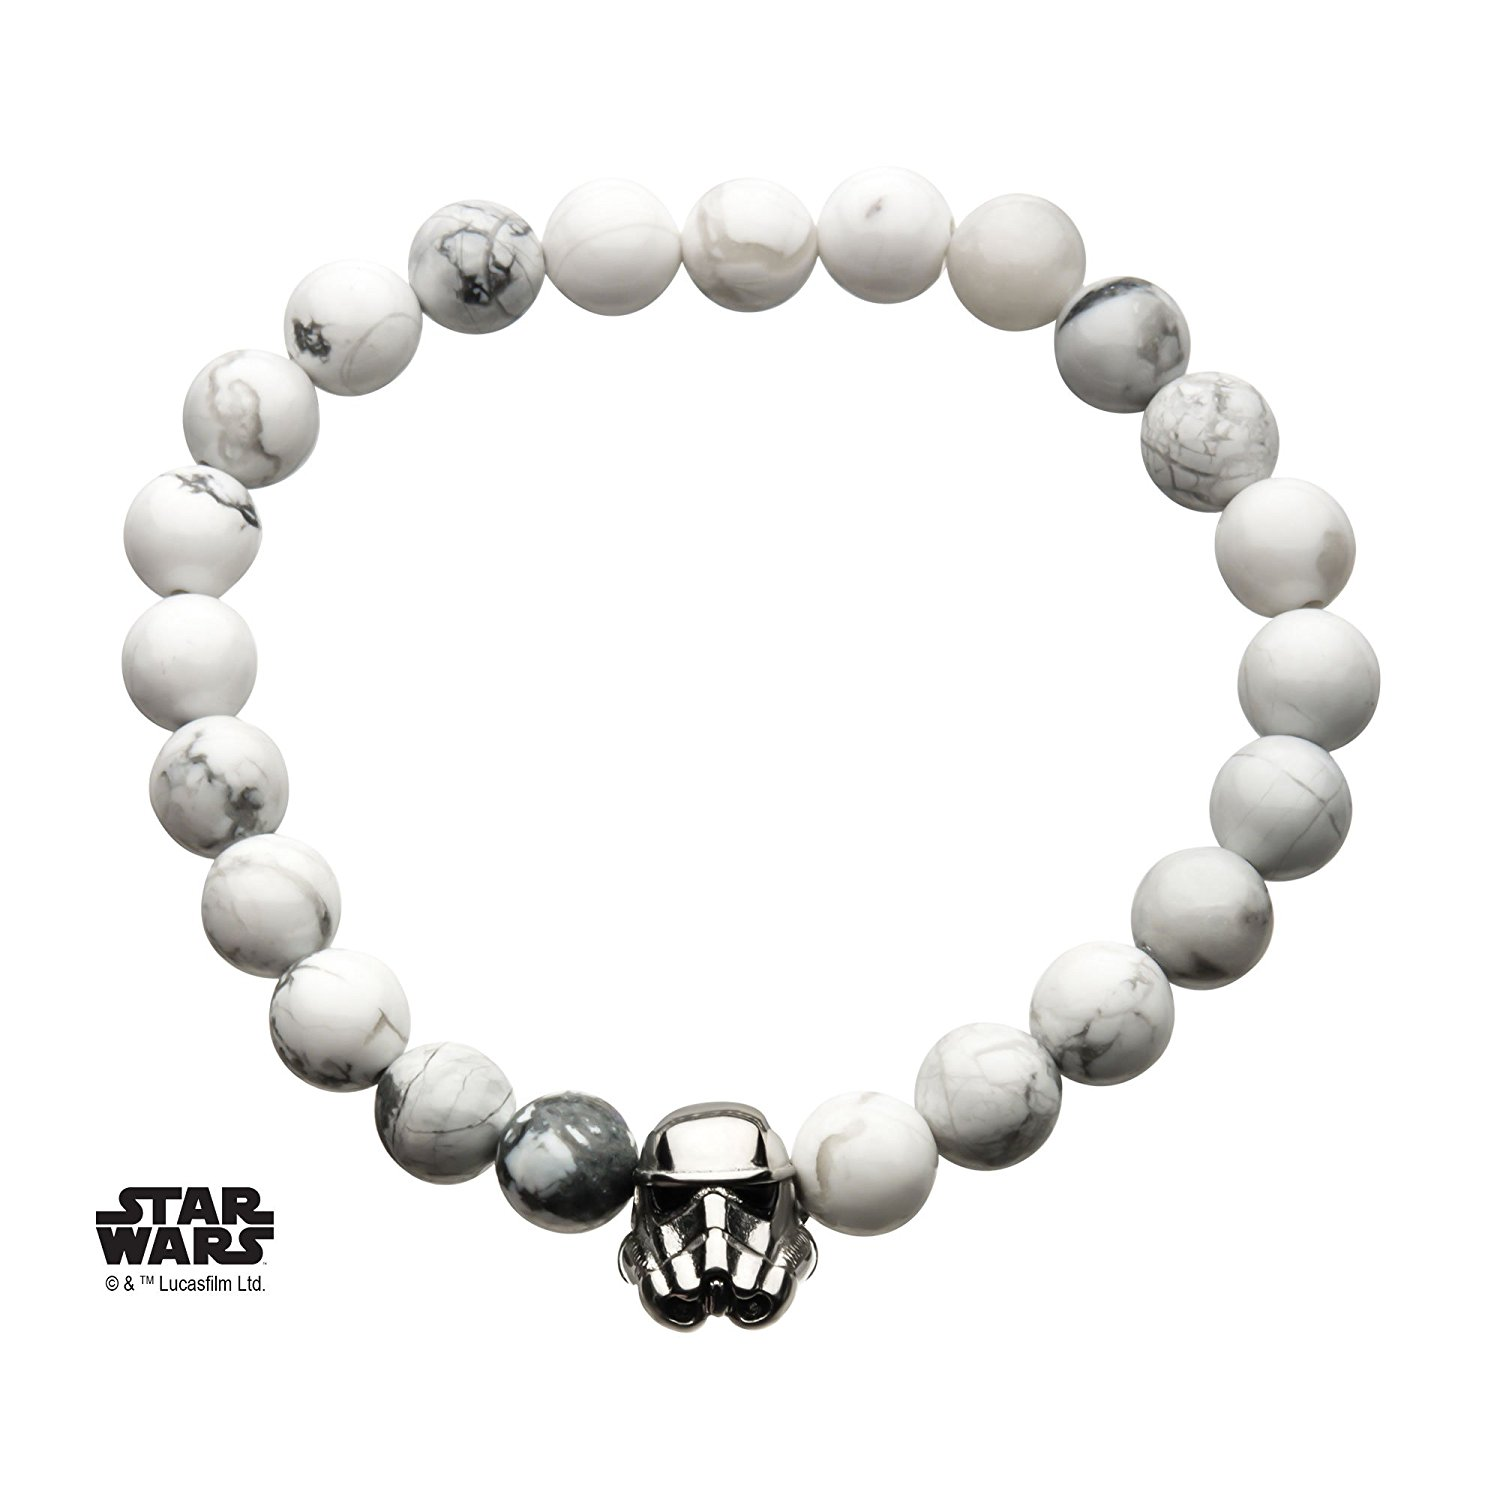 Star Wars Stormtrooper Beaded Bracelet on Amazon